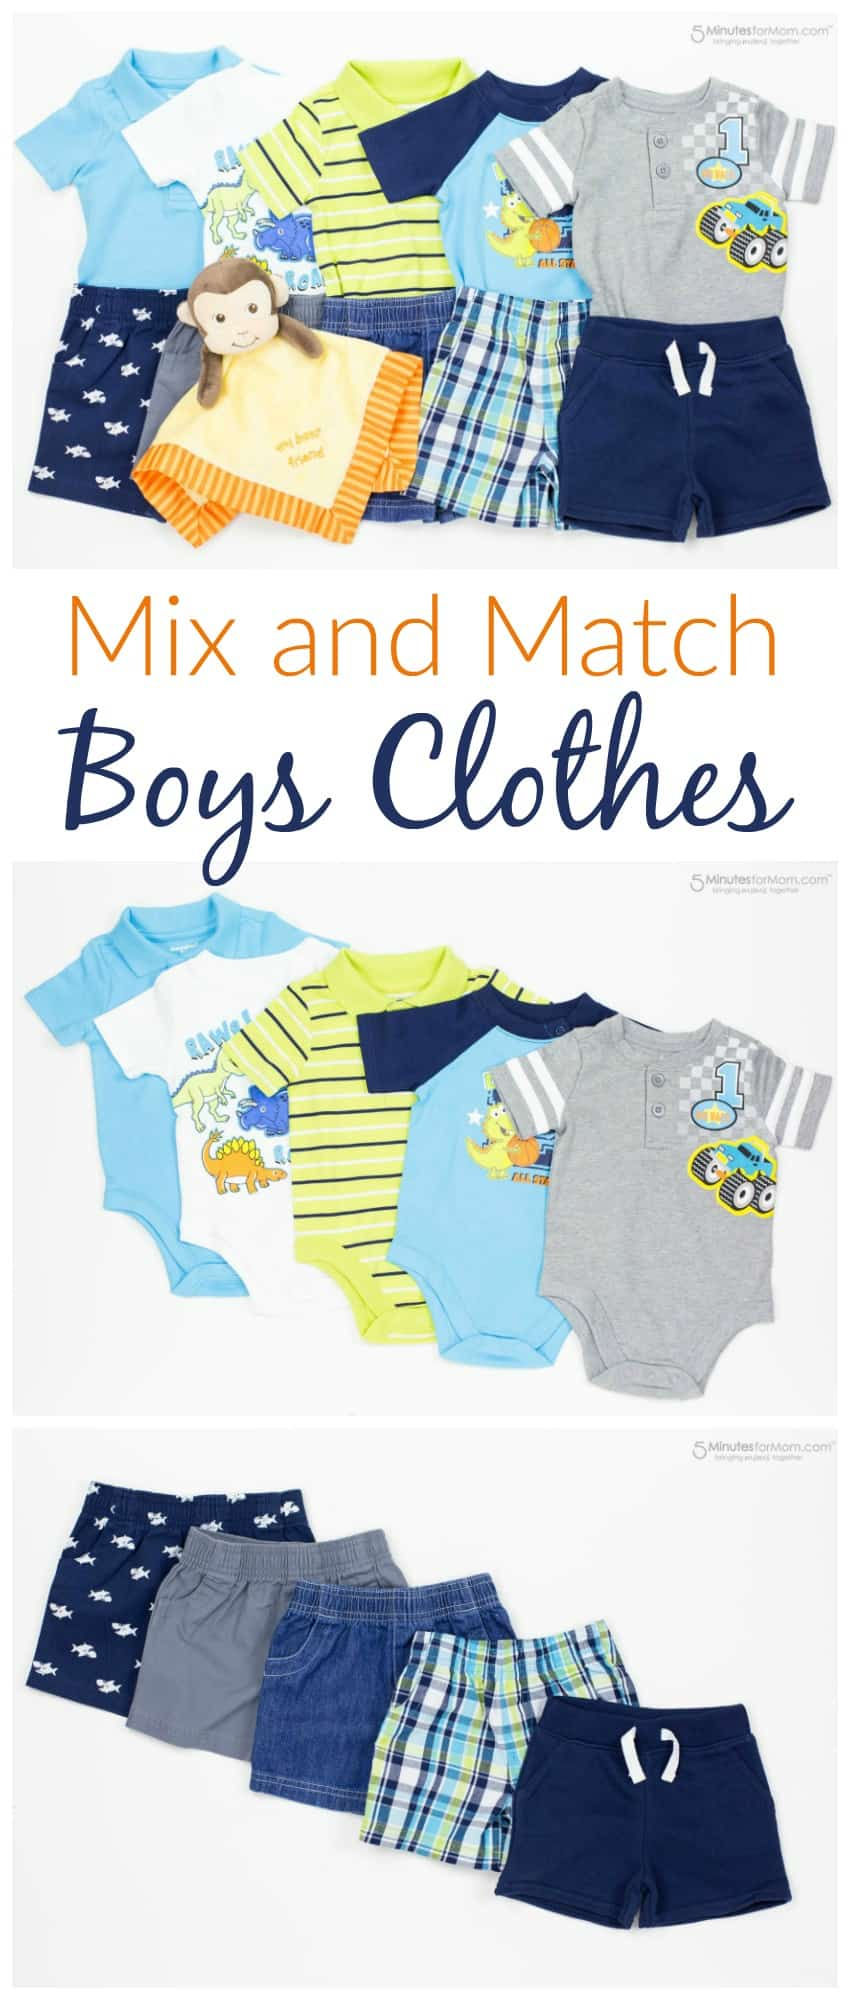 Mix and Match Boys Clothes